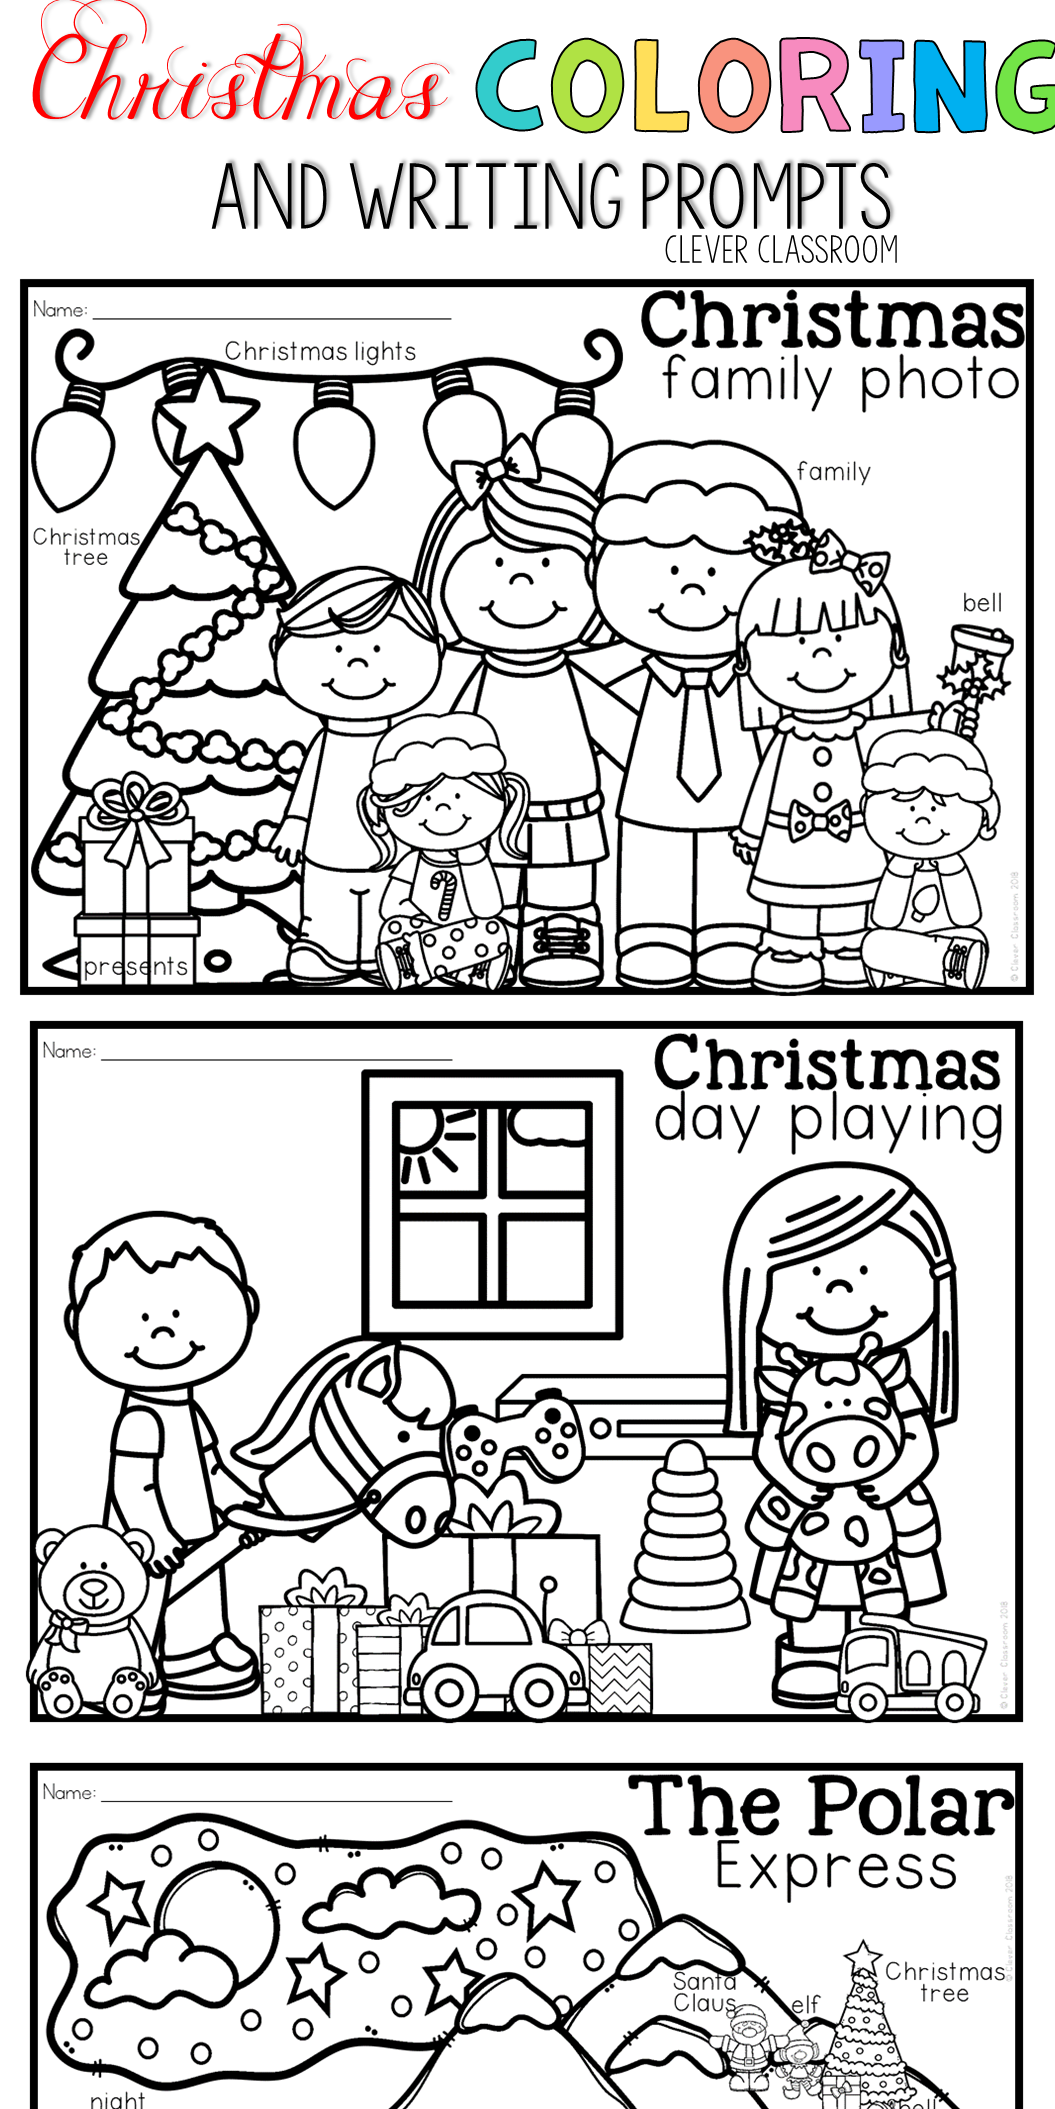 Christmas Coloring Pages And Writing Prompts